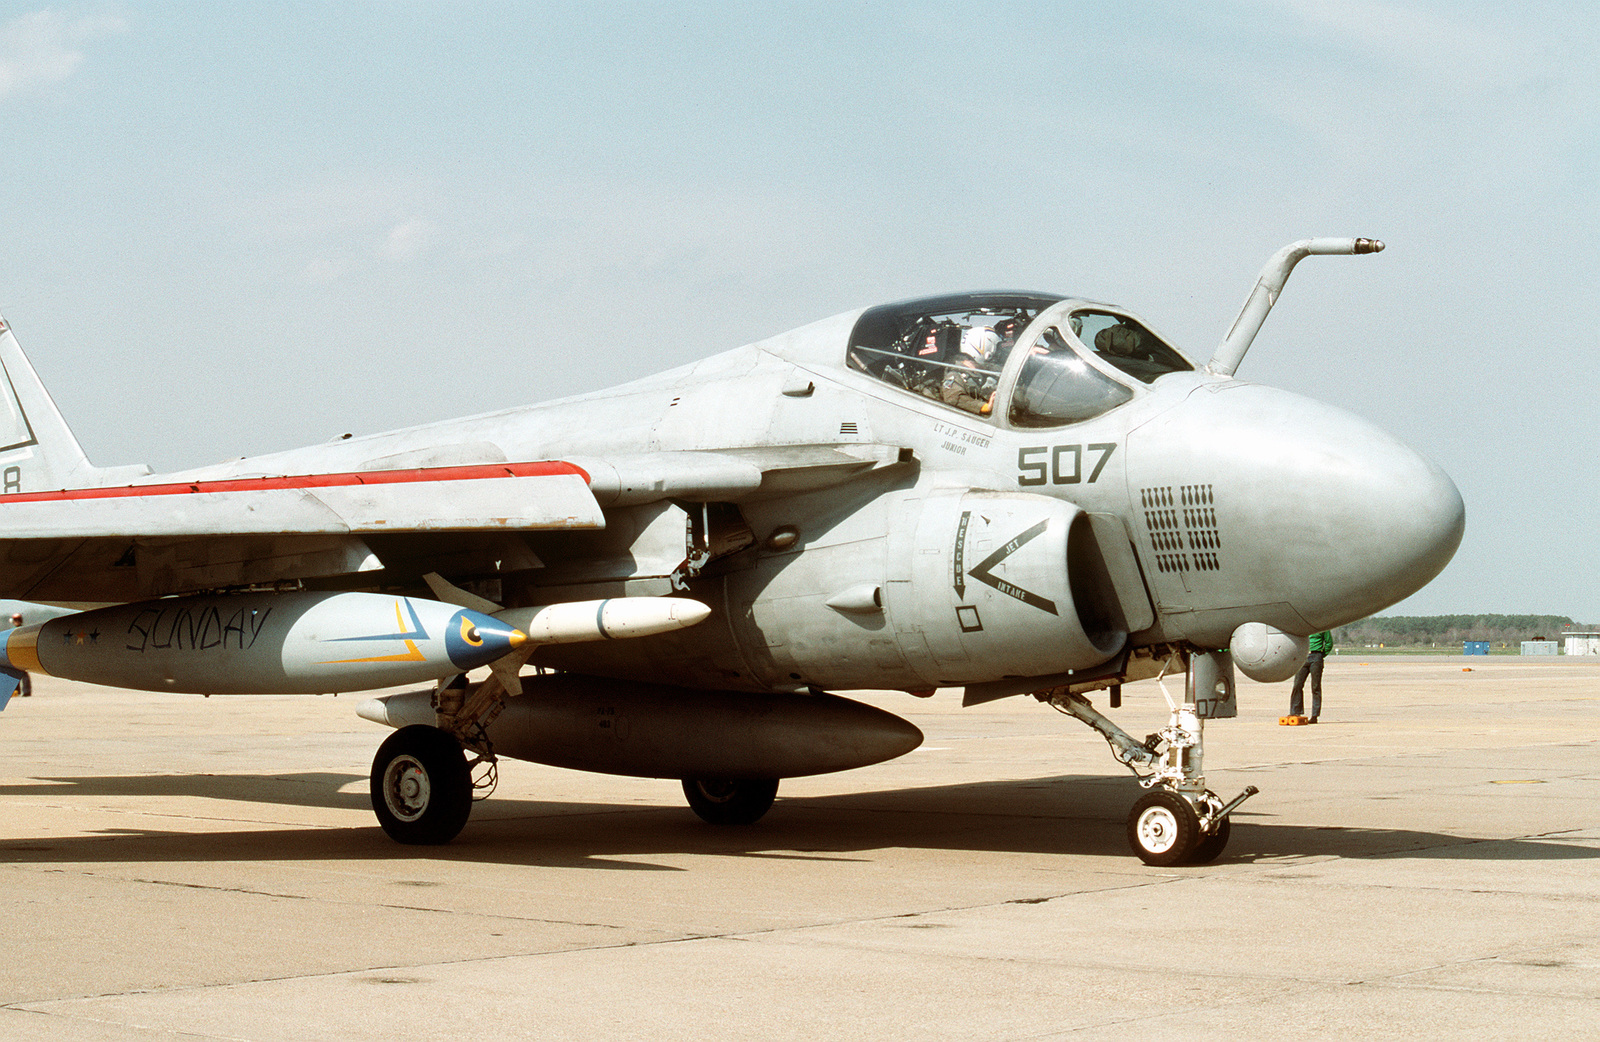 An Attack Squadron 75 (VA-75) A-6E Intruder aircraft taxis across the flight line after landing at the air station. The aircraft of Carrier Air Wing 3 (CVW-3), of which VA-75 is a part, and Carrier Air Wing 17 (CVW-17) are returning to their home fields after being deployed in the Persian Gulf region aboard the aircraft carriers USS JOHN F. KENNEDY (CV-67) and USS SARATOGA (CV-60), respectively, for Operation Desert Shield and Operation Desert Storm